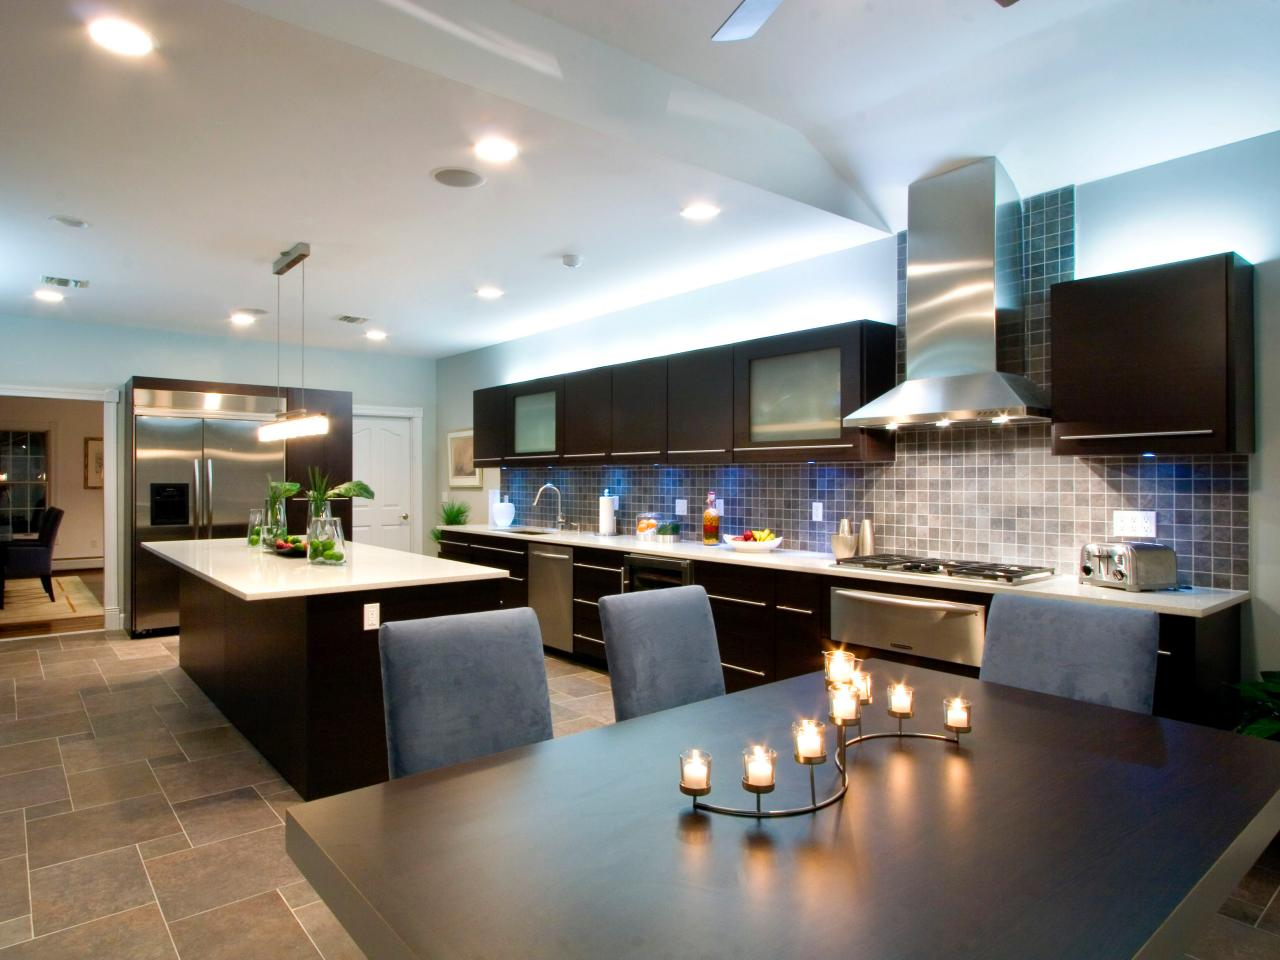 Modern Kitchen Renovation Ideas How To Begin A Kitchen Remodel  Hgtv